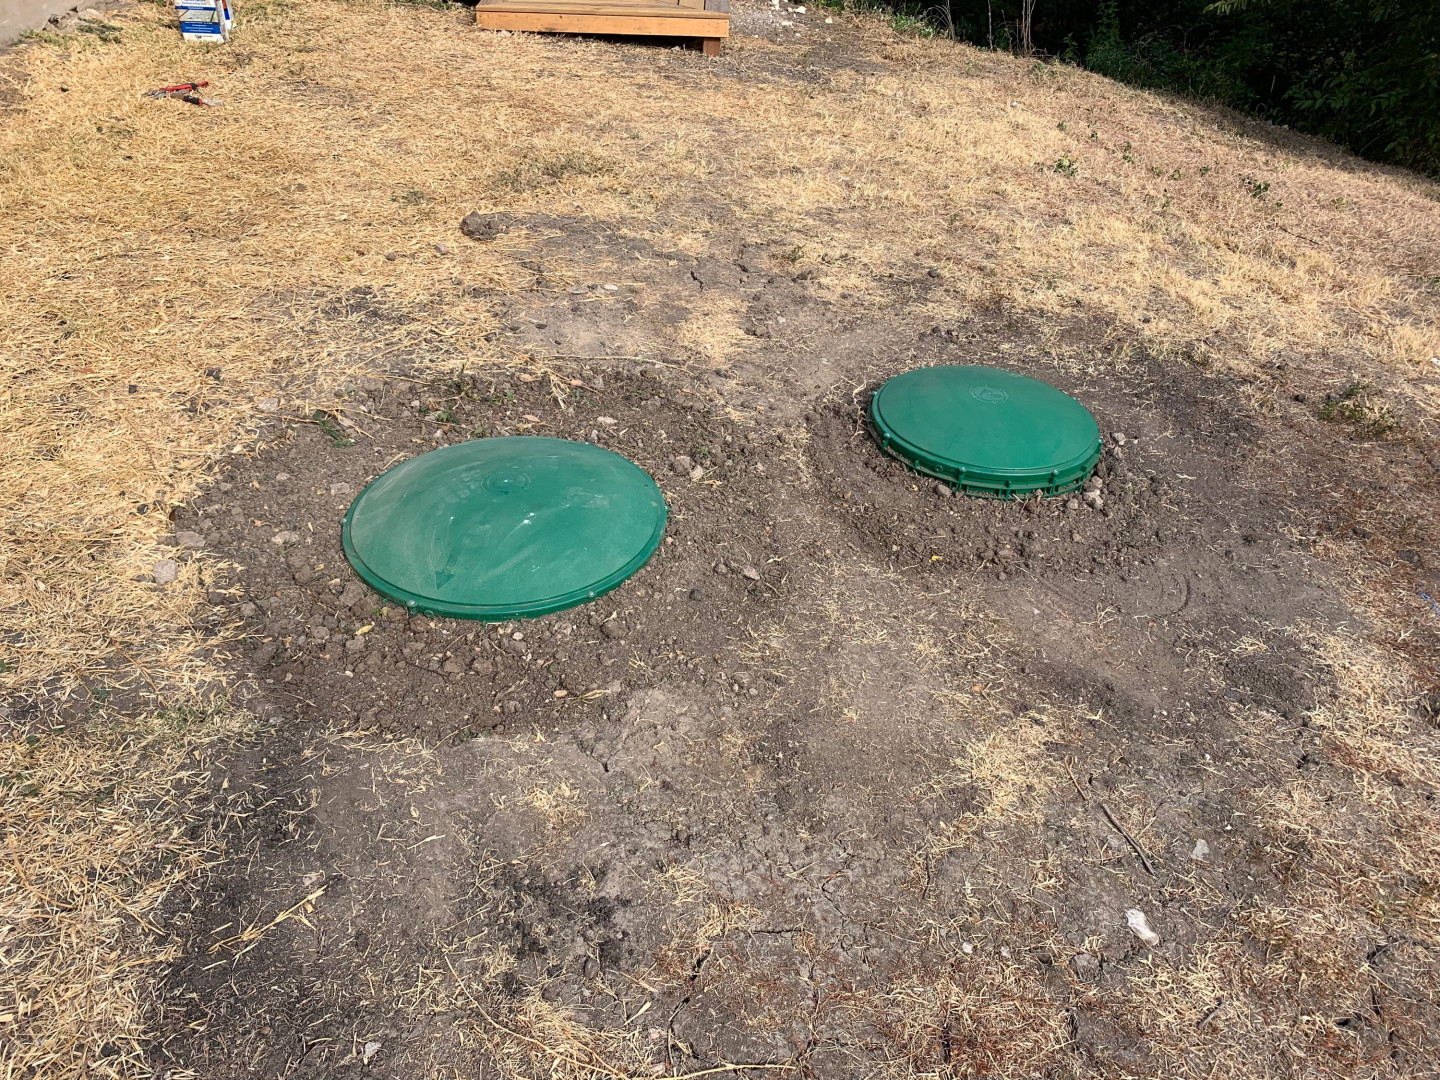 Is Your Septic Tank Lid Broken or Are You Tired of Digging Fees?